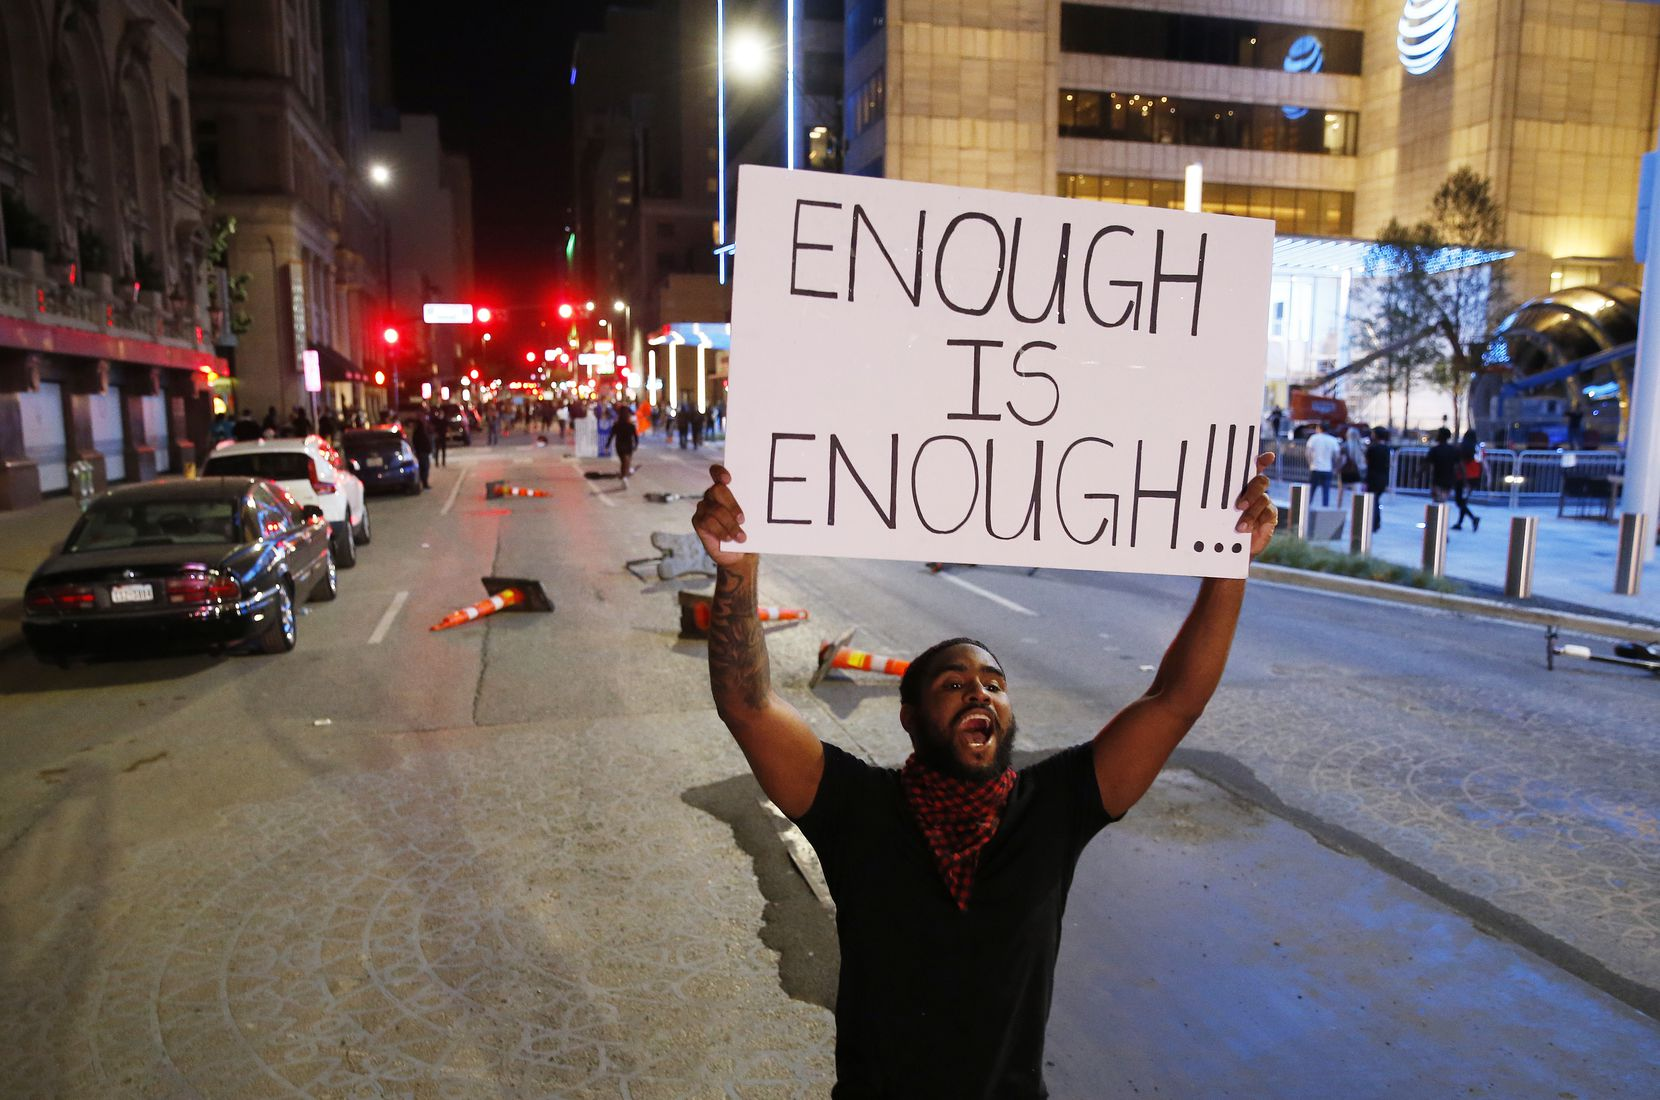 A protester yelled toward police as he walked up Commerce Street in downtown Dallas during a march against <EP>police brutality, days after George Floyd's death. Activists staged peaceful protests in communities throughout North Texas to call for racial justice.